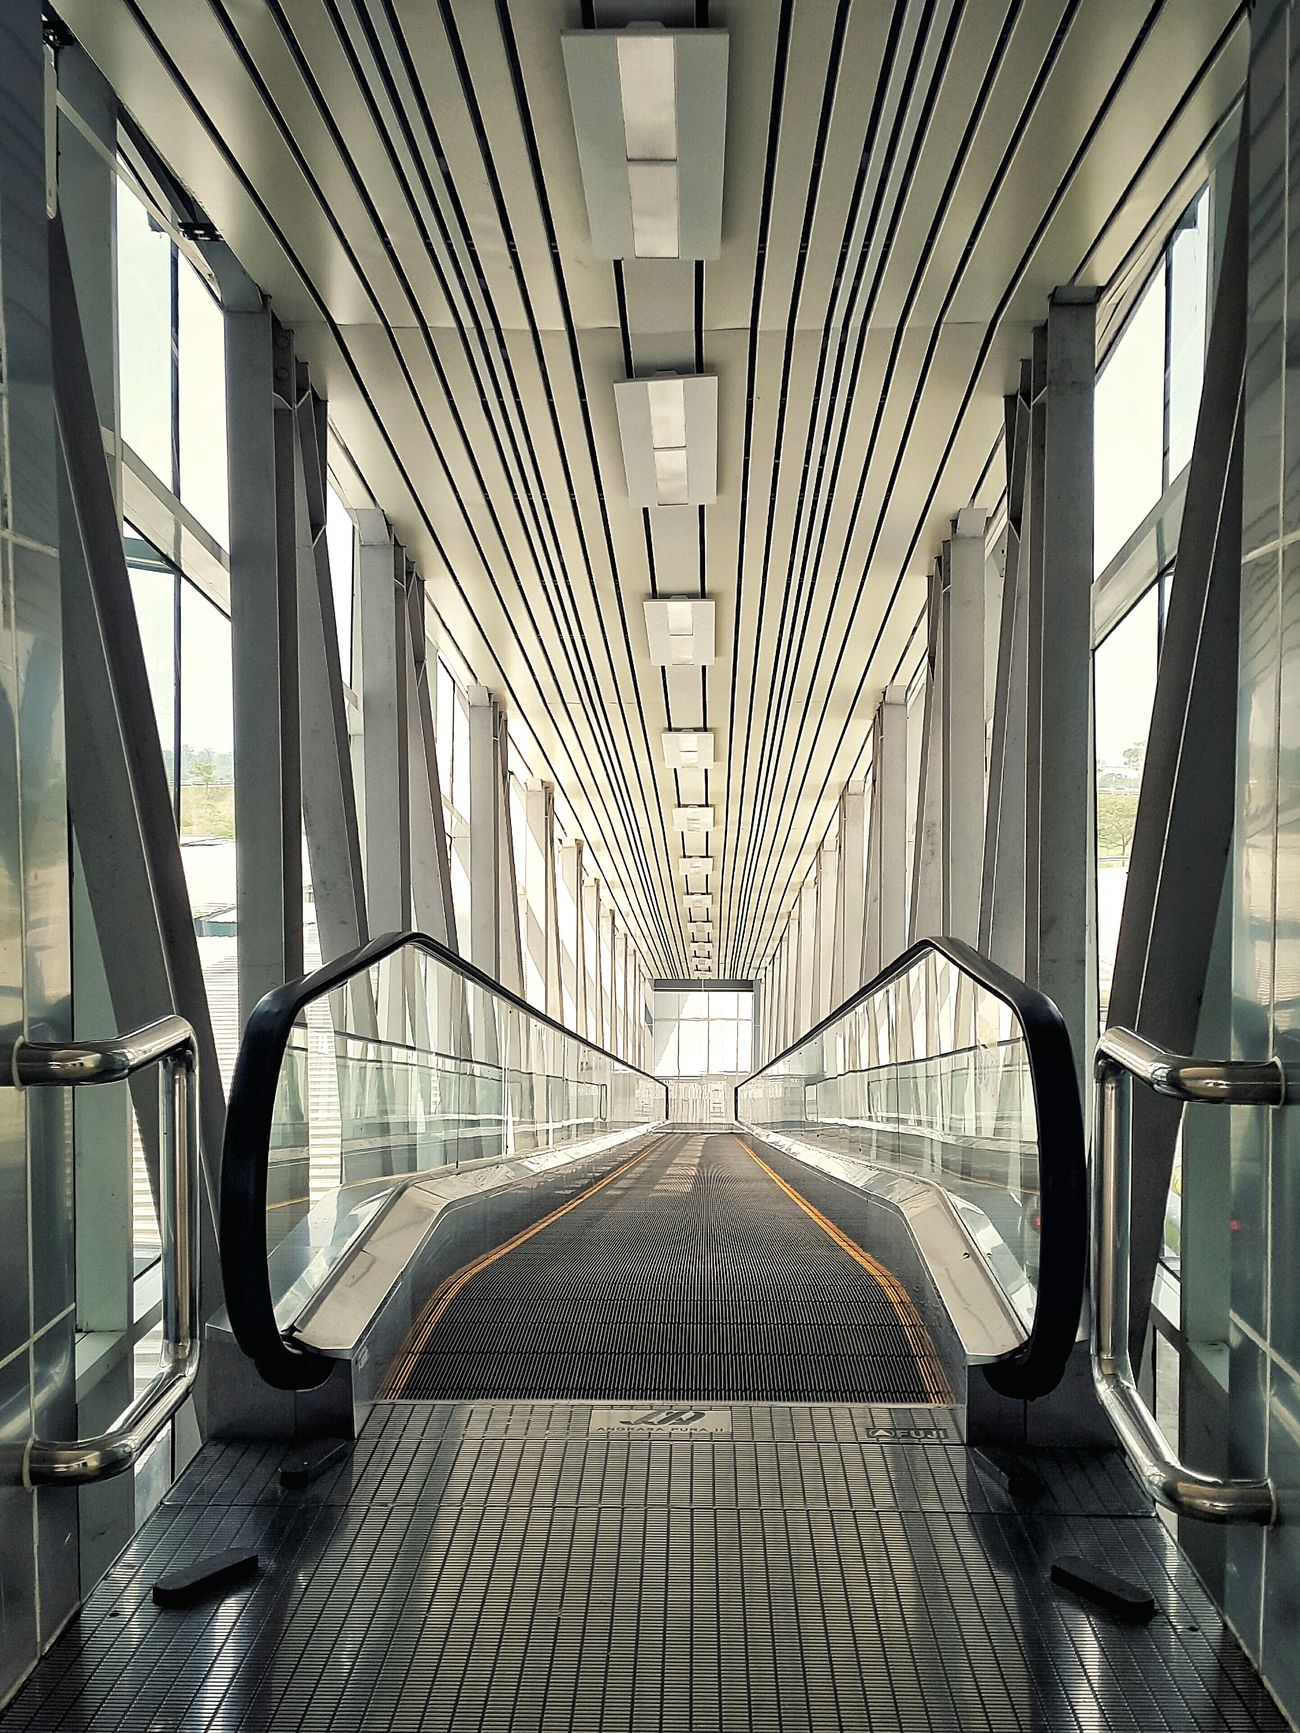 Escalator Vanishing Point Geometric Shapes Stripes Everywhere at Kualanamu airport, Medan INDONESIA